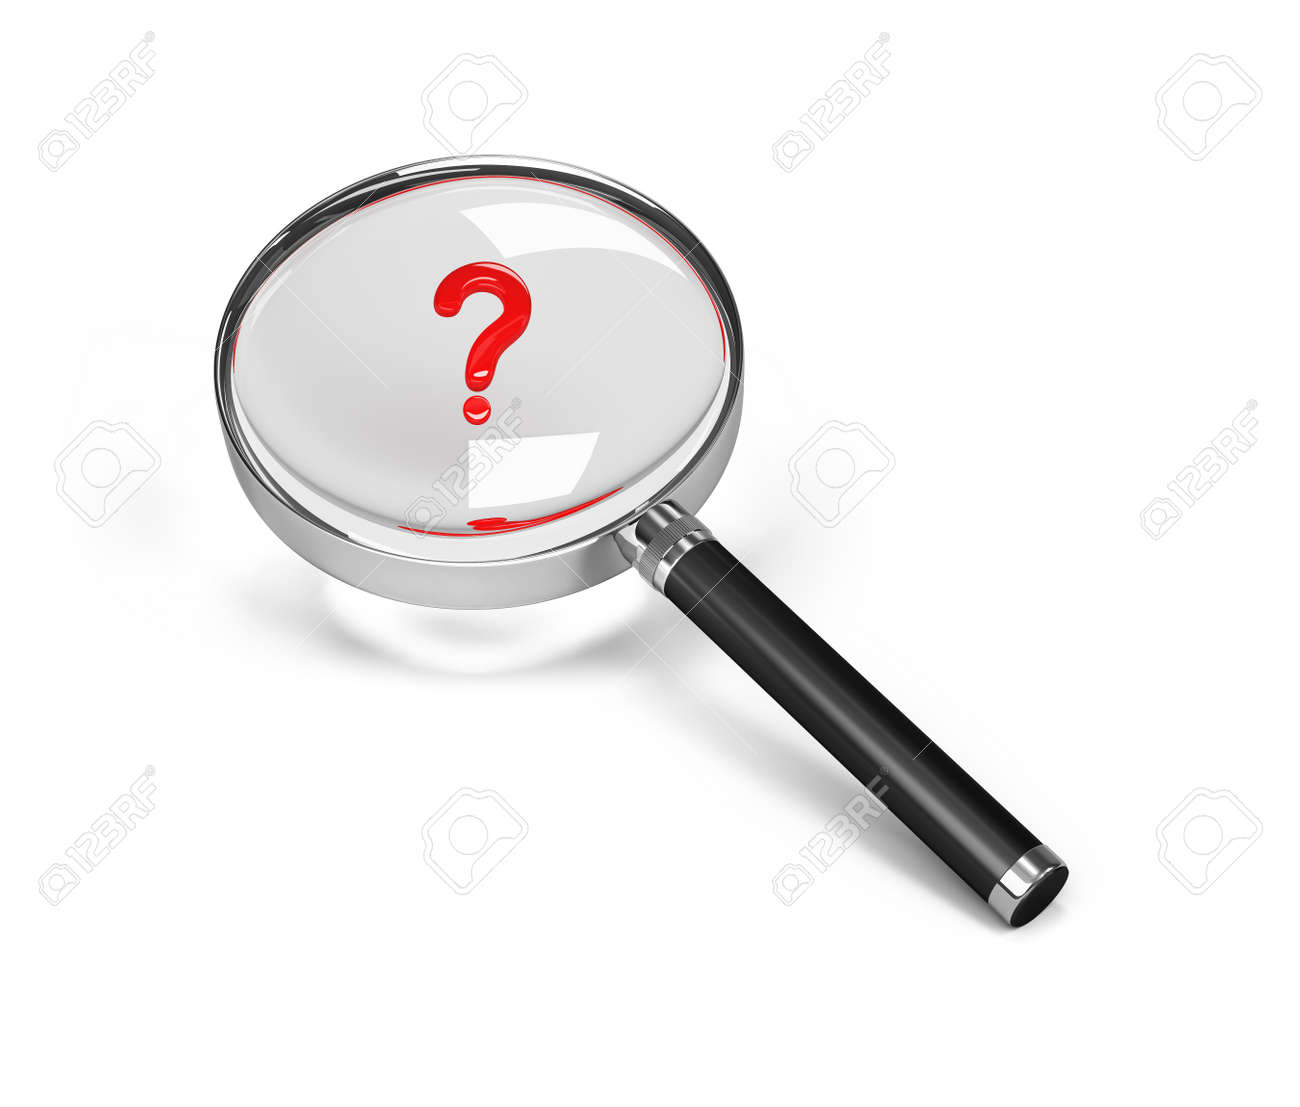 3d person with magnifying glass and question mark stock images image - Question Mark Under A Magnifying Glass 3d Image White Background Stock Photo